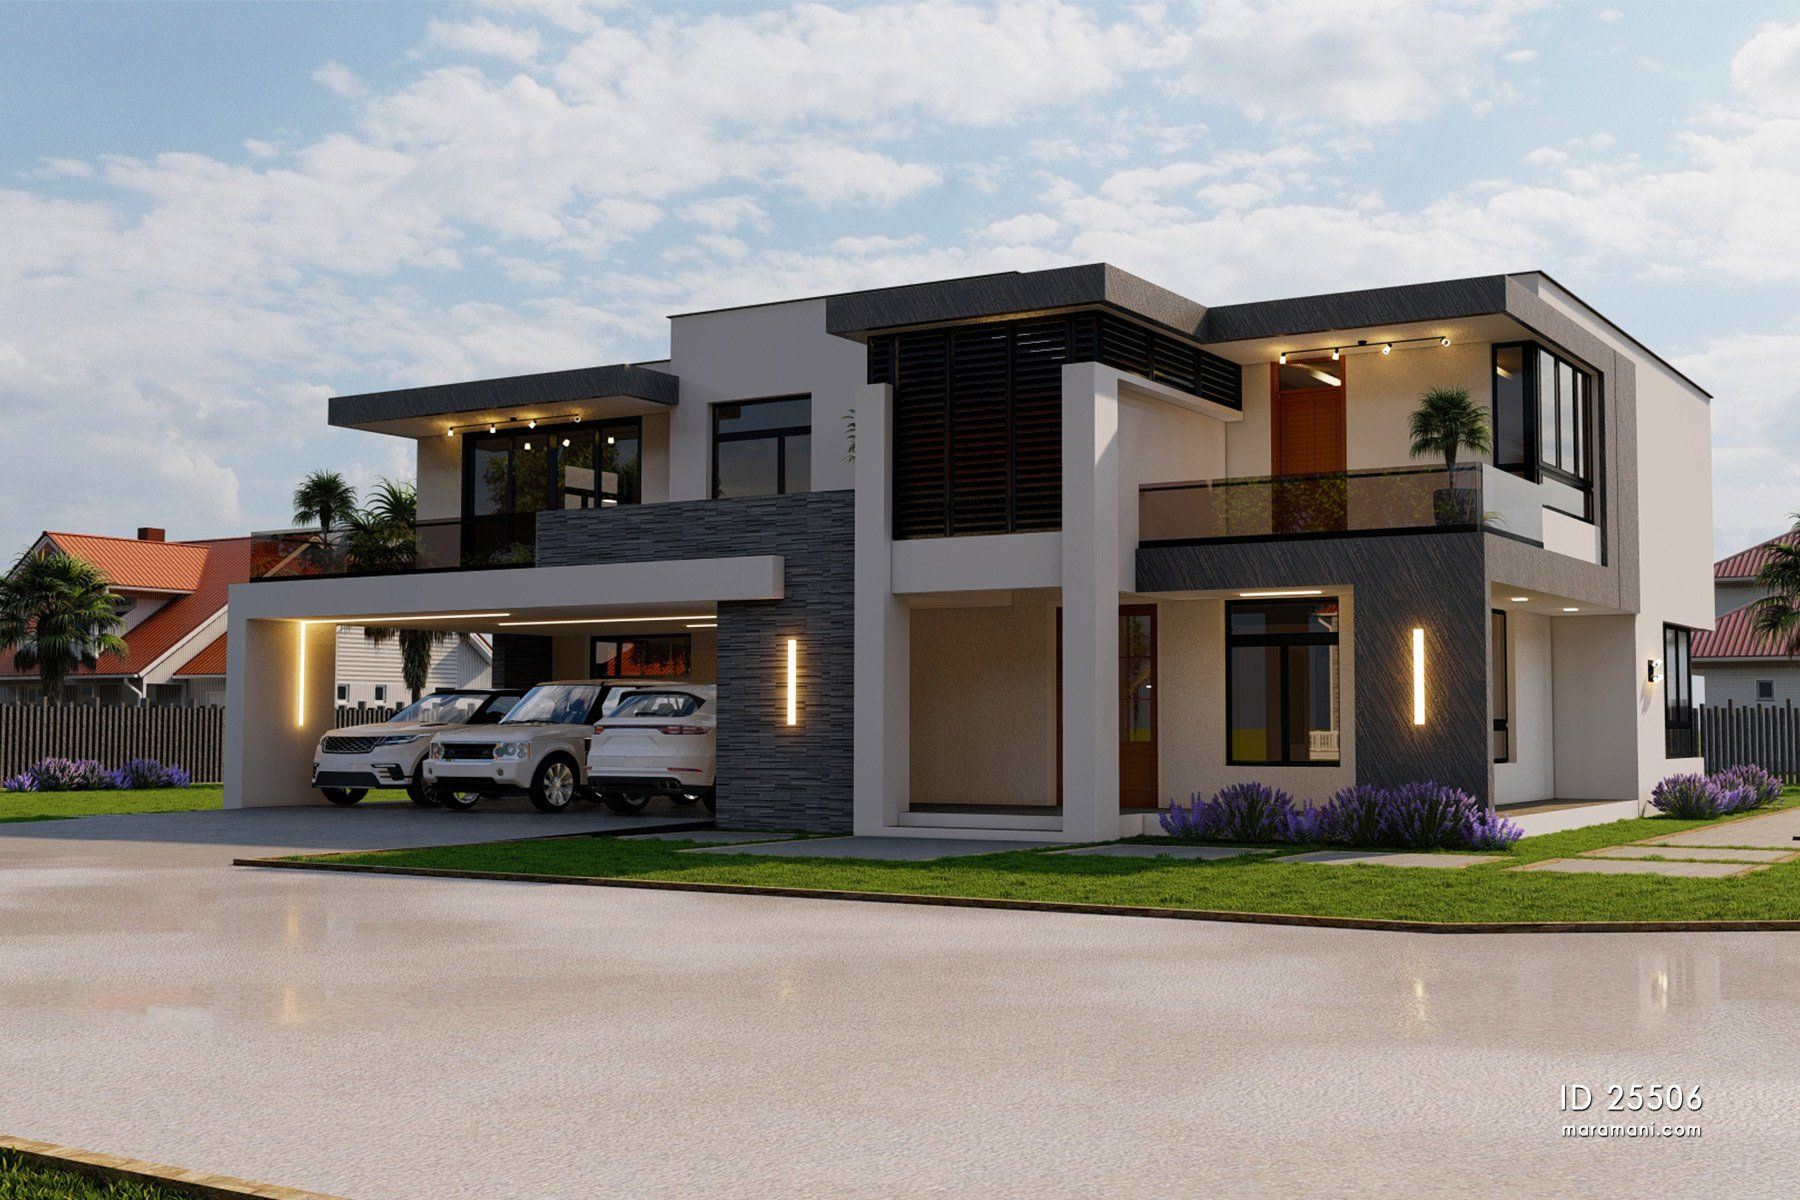 Modern 11 Bedroom Double Storey House - ID 2111106 - House Plans by